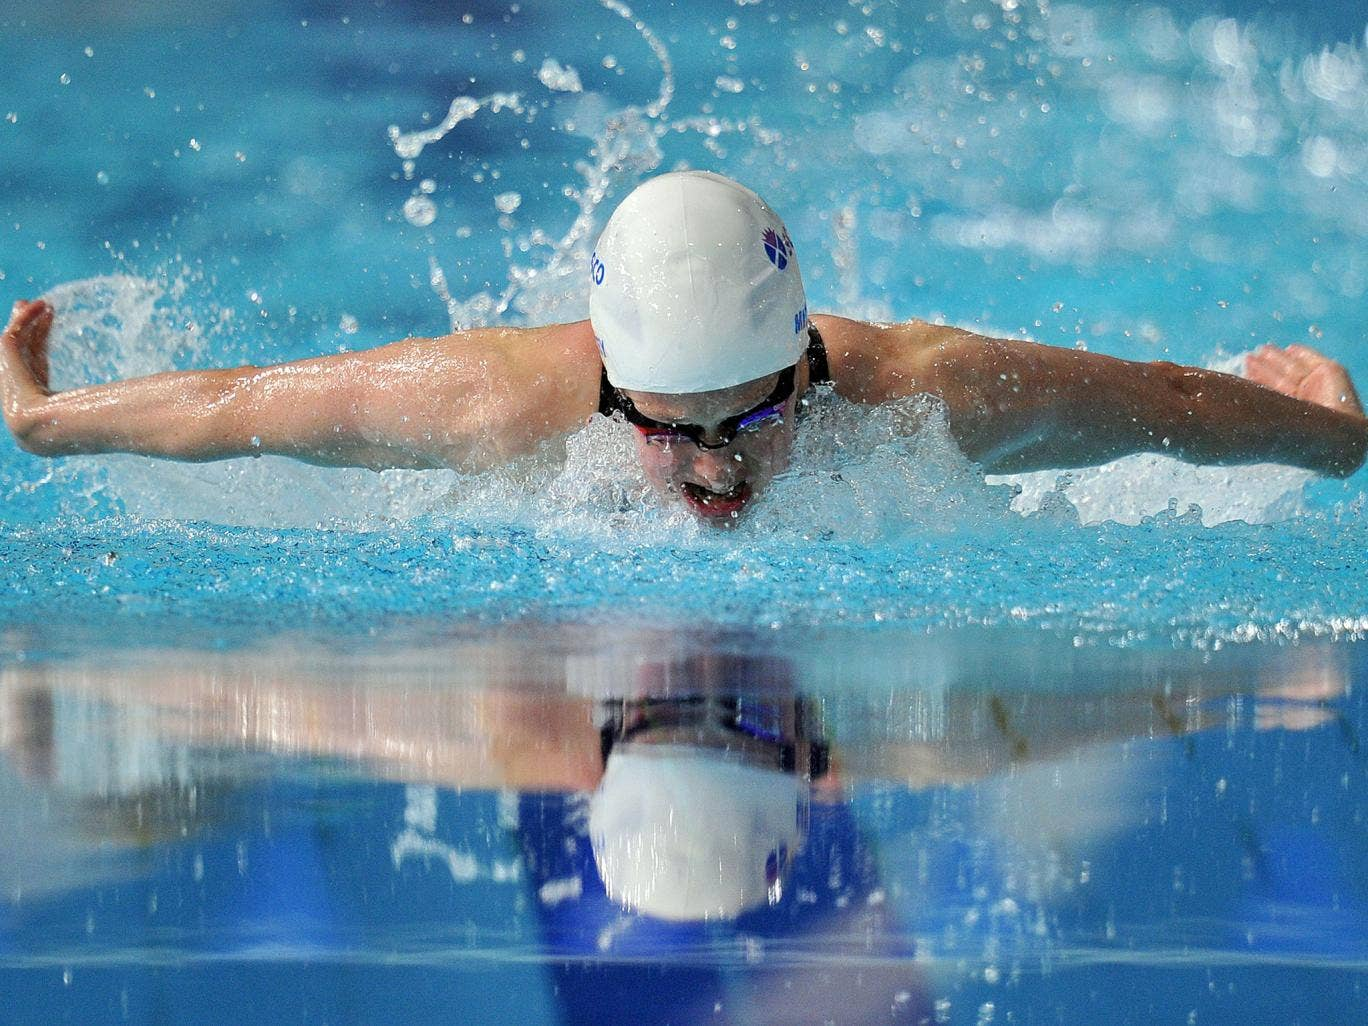 Hannah Miley of England competes in the Women's 400m Individual Medley heat during the 2014 Commonwealth Games